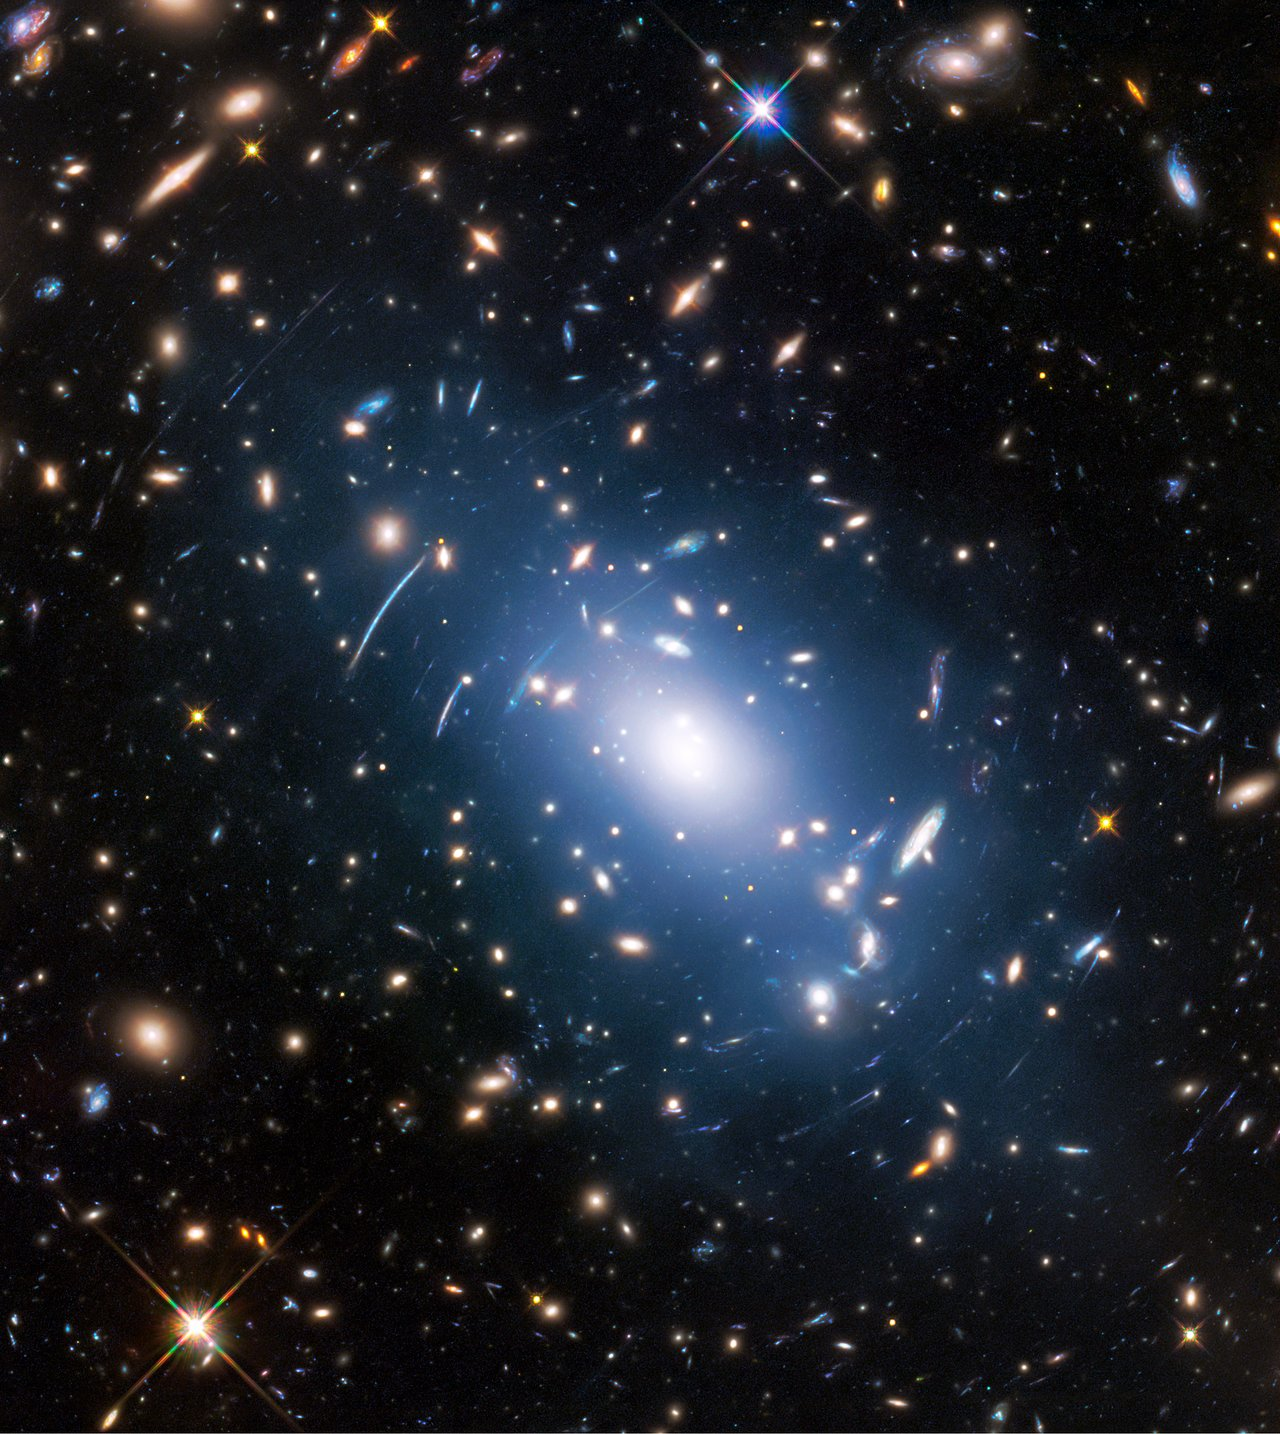 Science Release: Faint starlight in Hubble images reveals distribution of dark matter